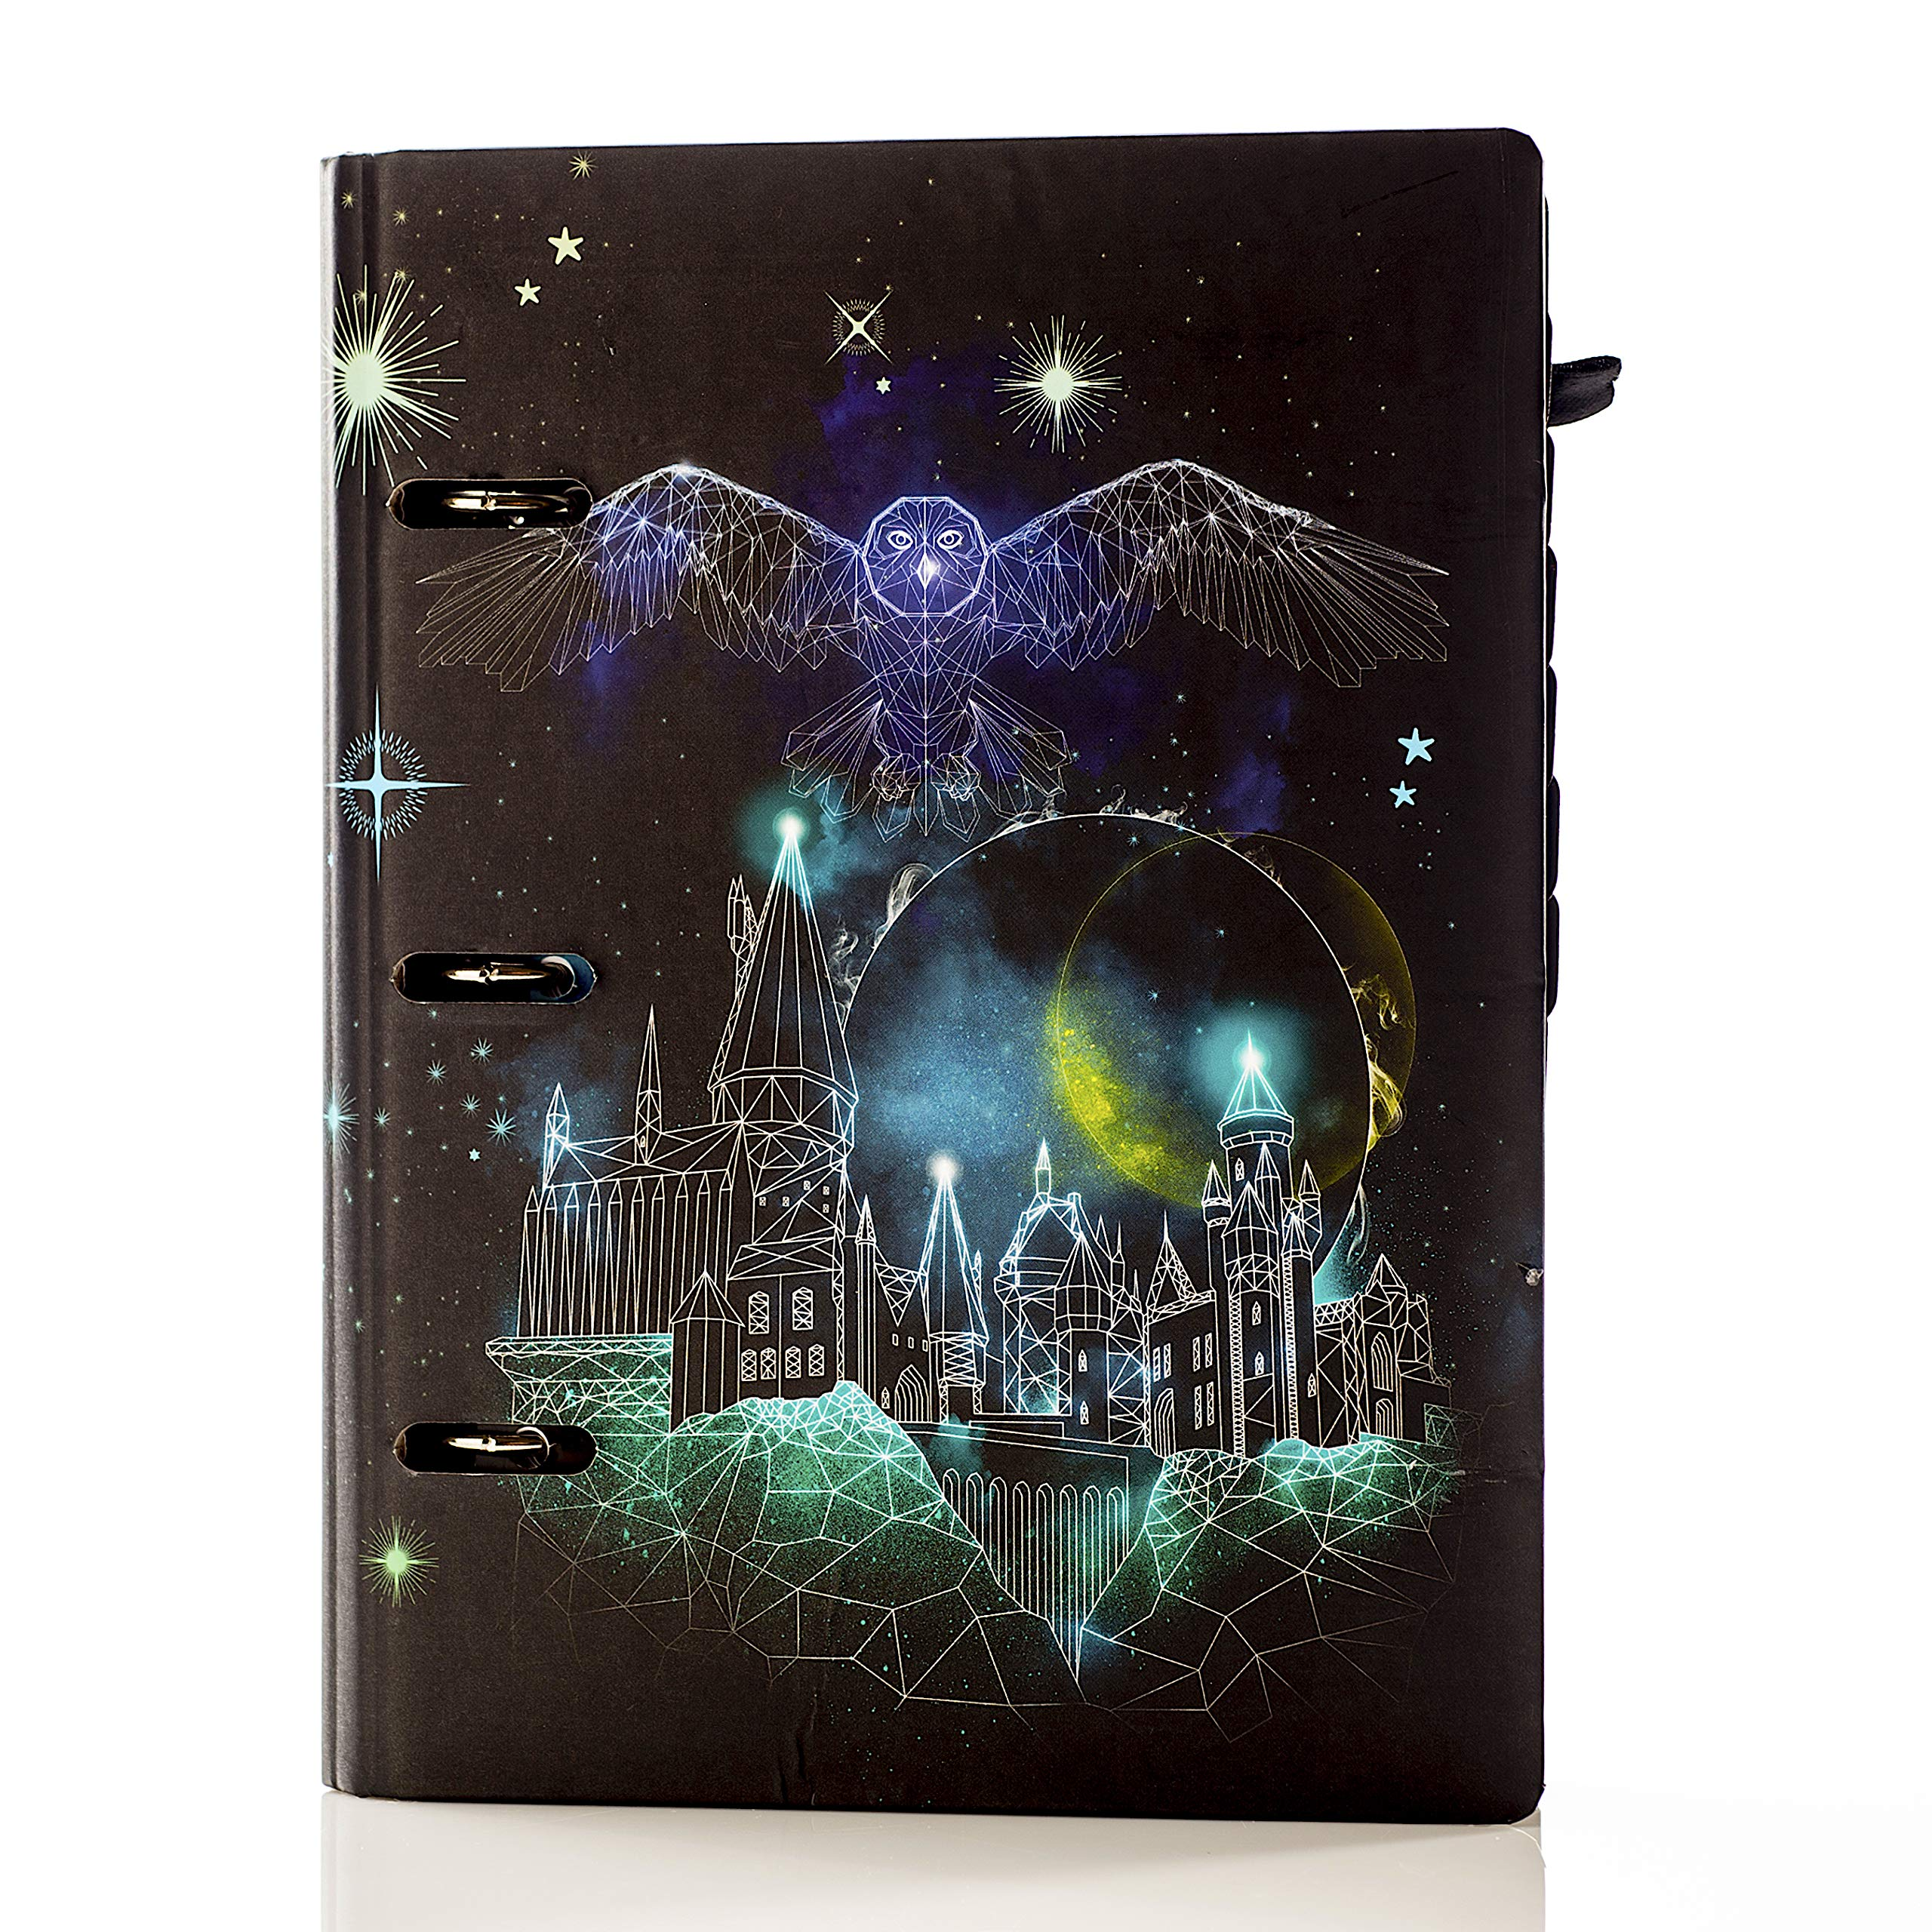 """Conquest Journals Harry Potter Celestial Undated Planner, 7 1/4""""x9"""", 3 Ring Mini Euro Binder, Weekly Horizontal Layout, Patronous Themed, 199 Pages, 2 Sticker Sheets, Elastic Strap and Pen Loop"""